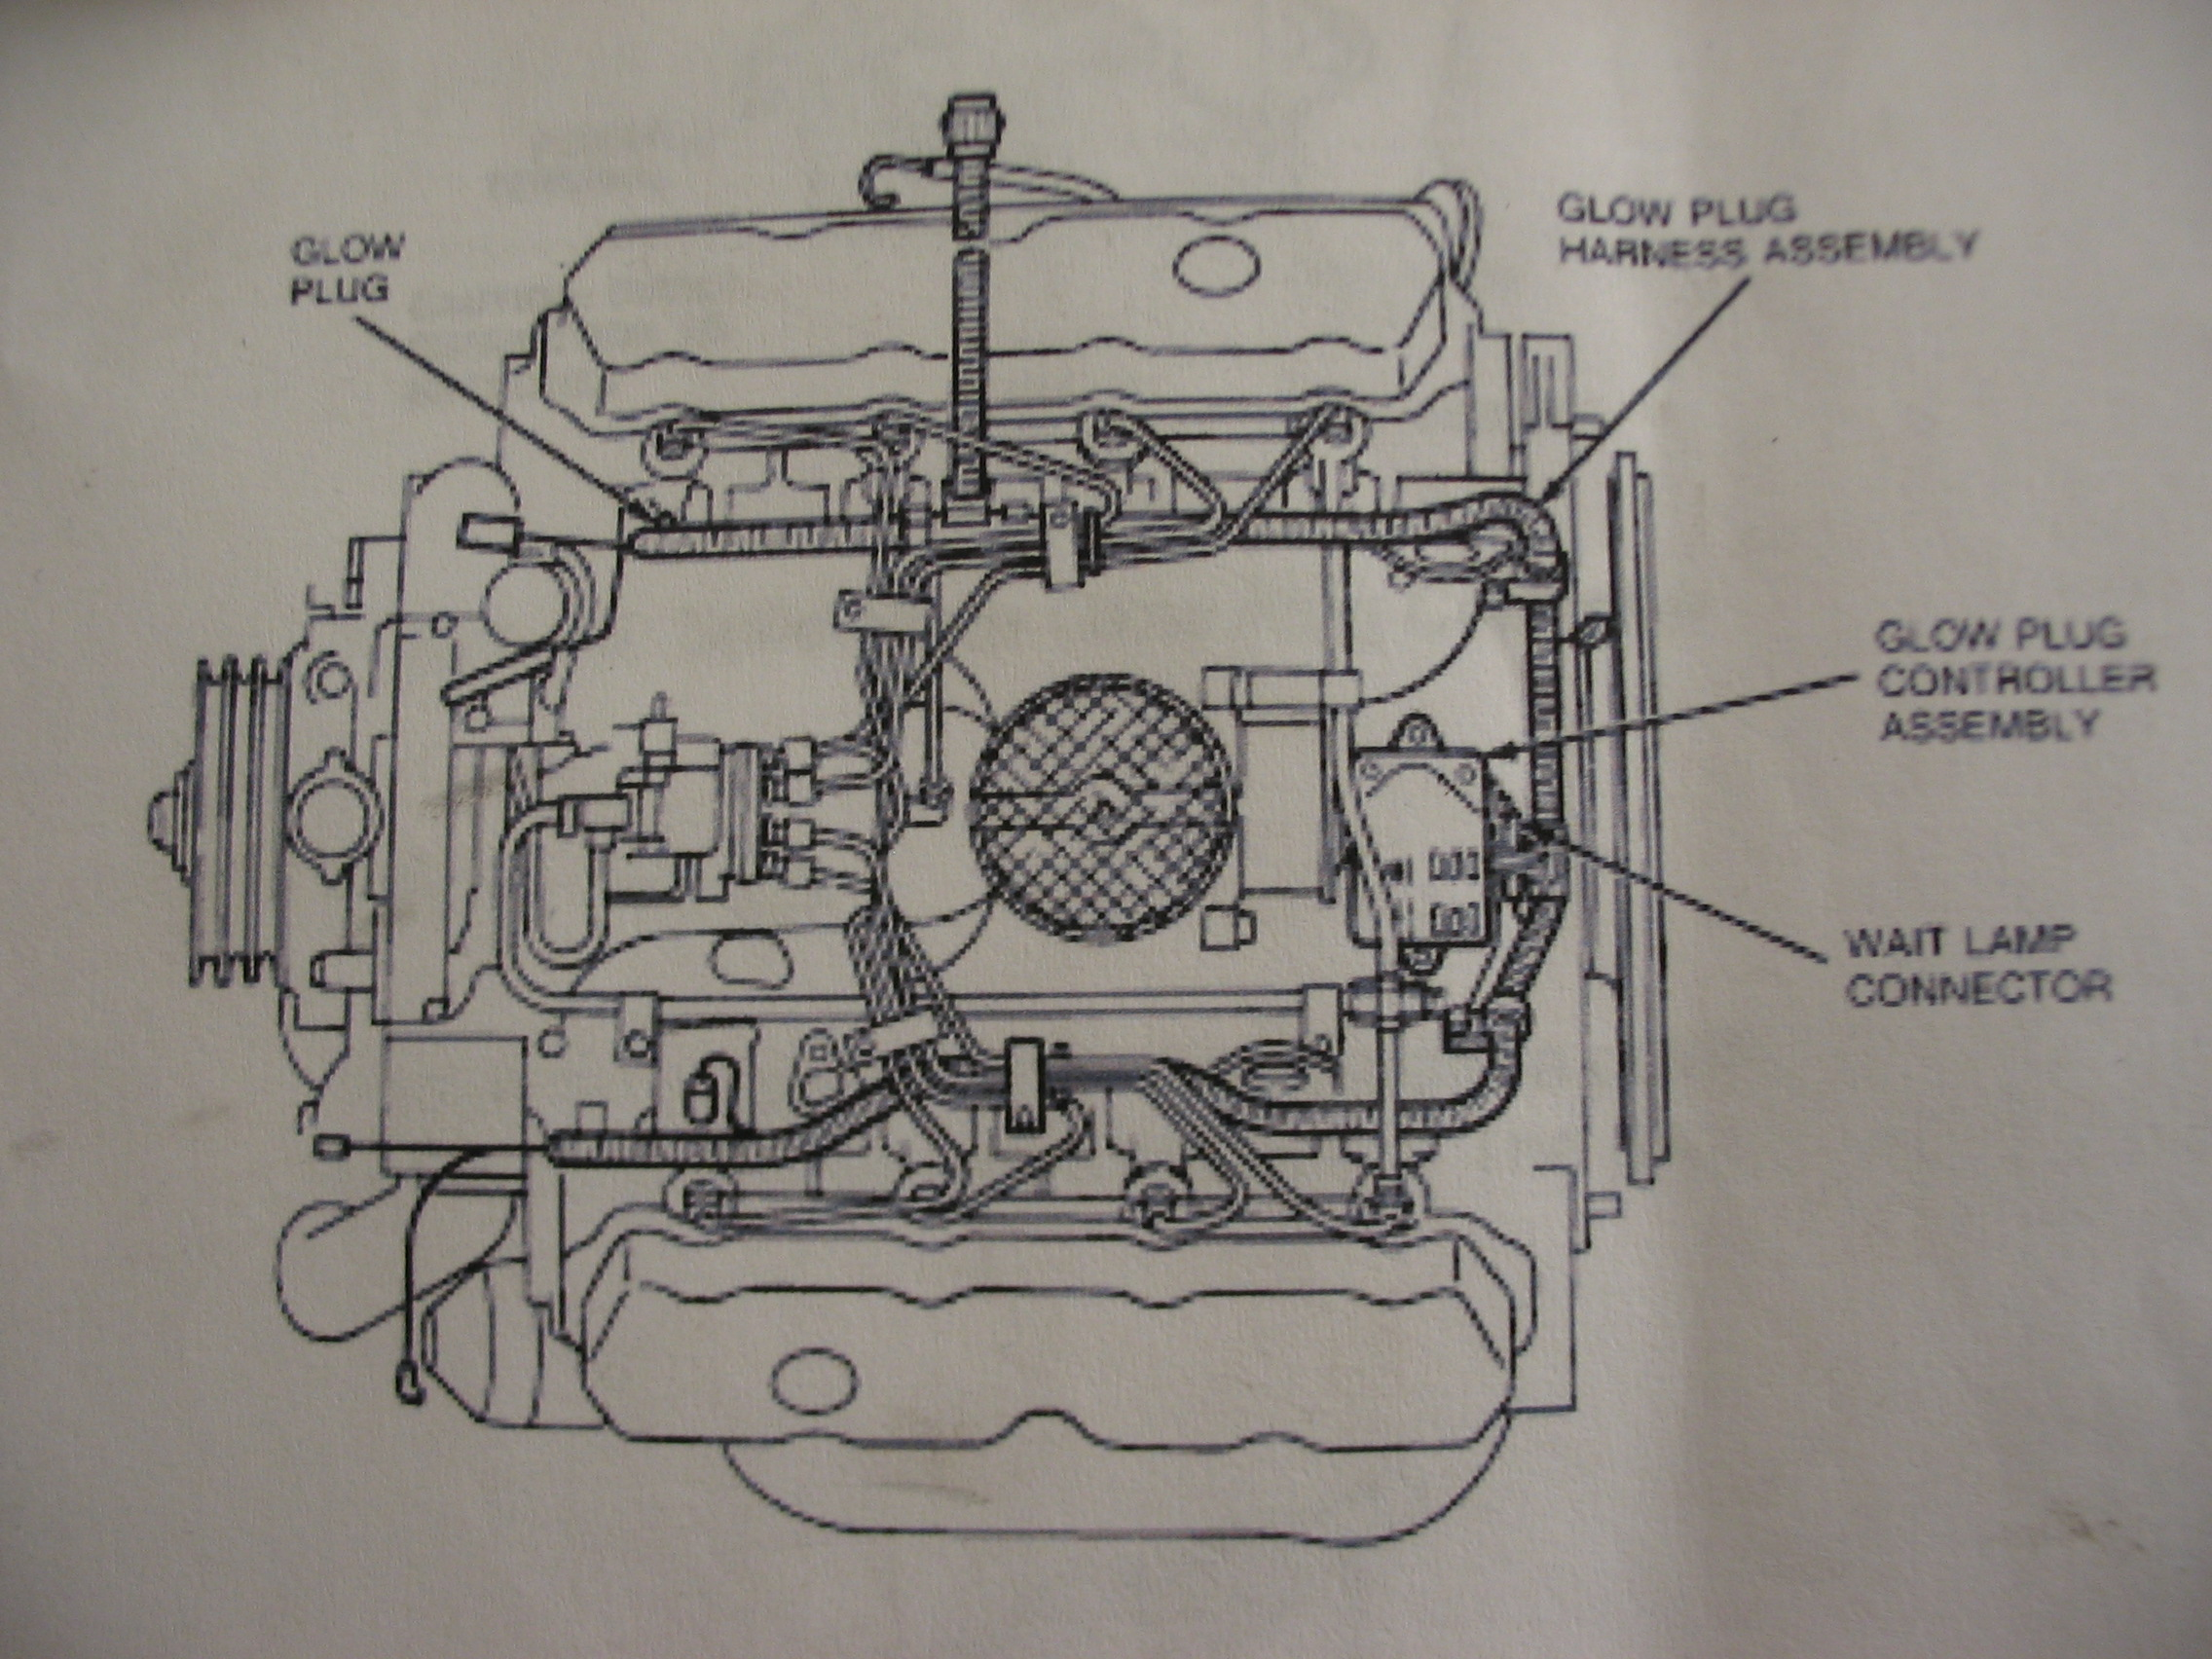 Ford Diagrams Glow Plug Controller Wiring Diagram 91 Location On Engine